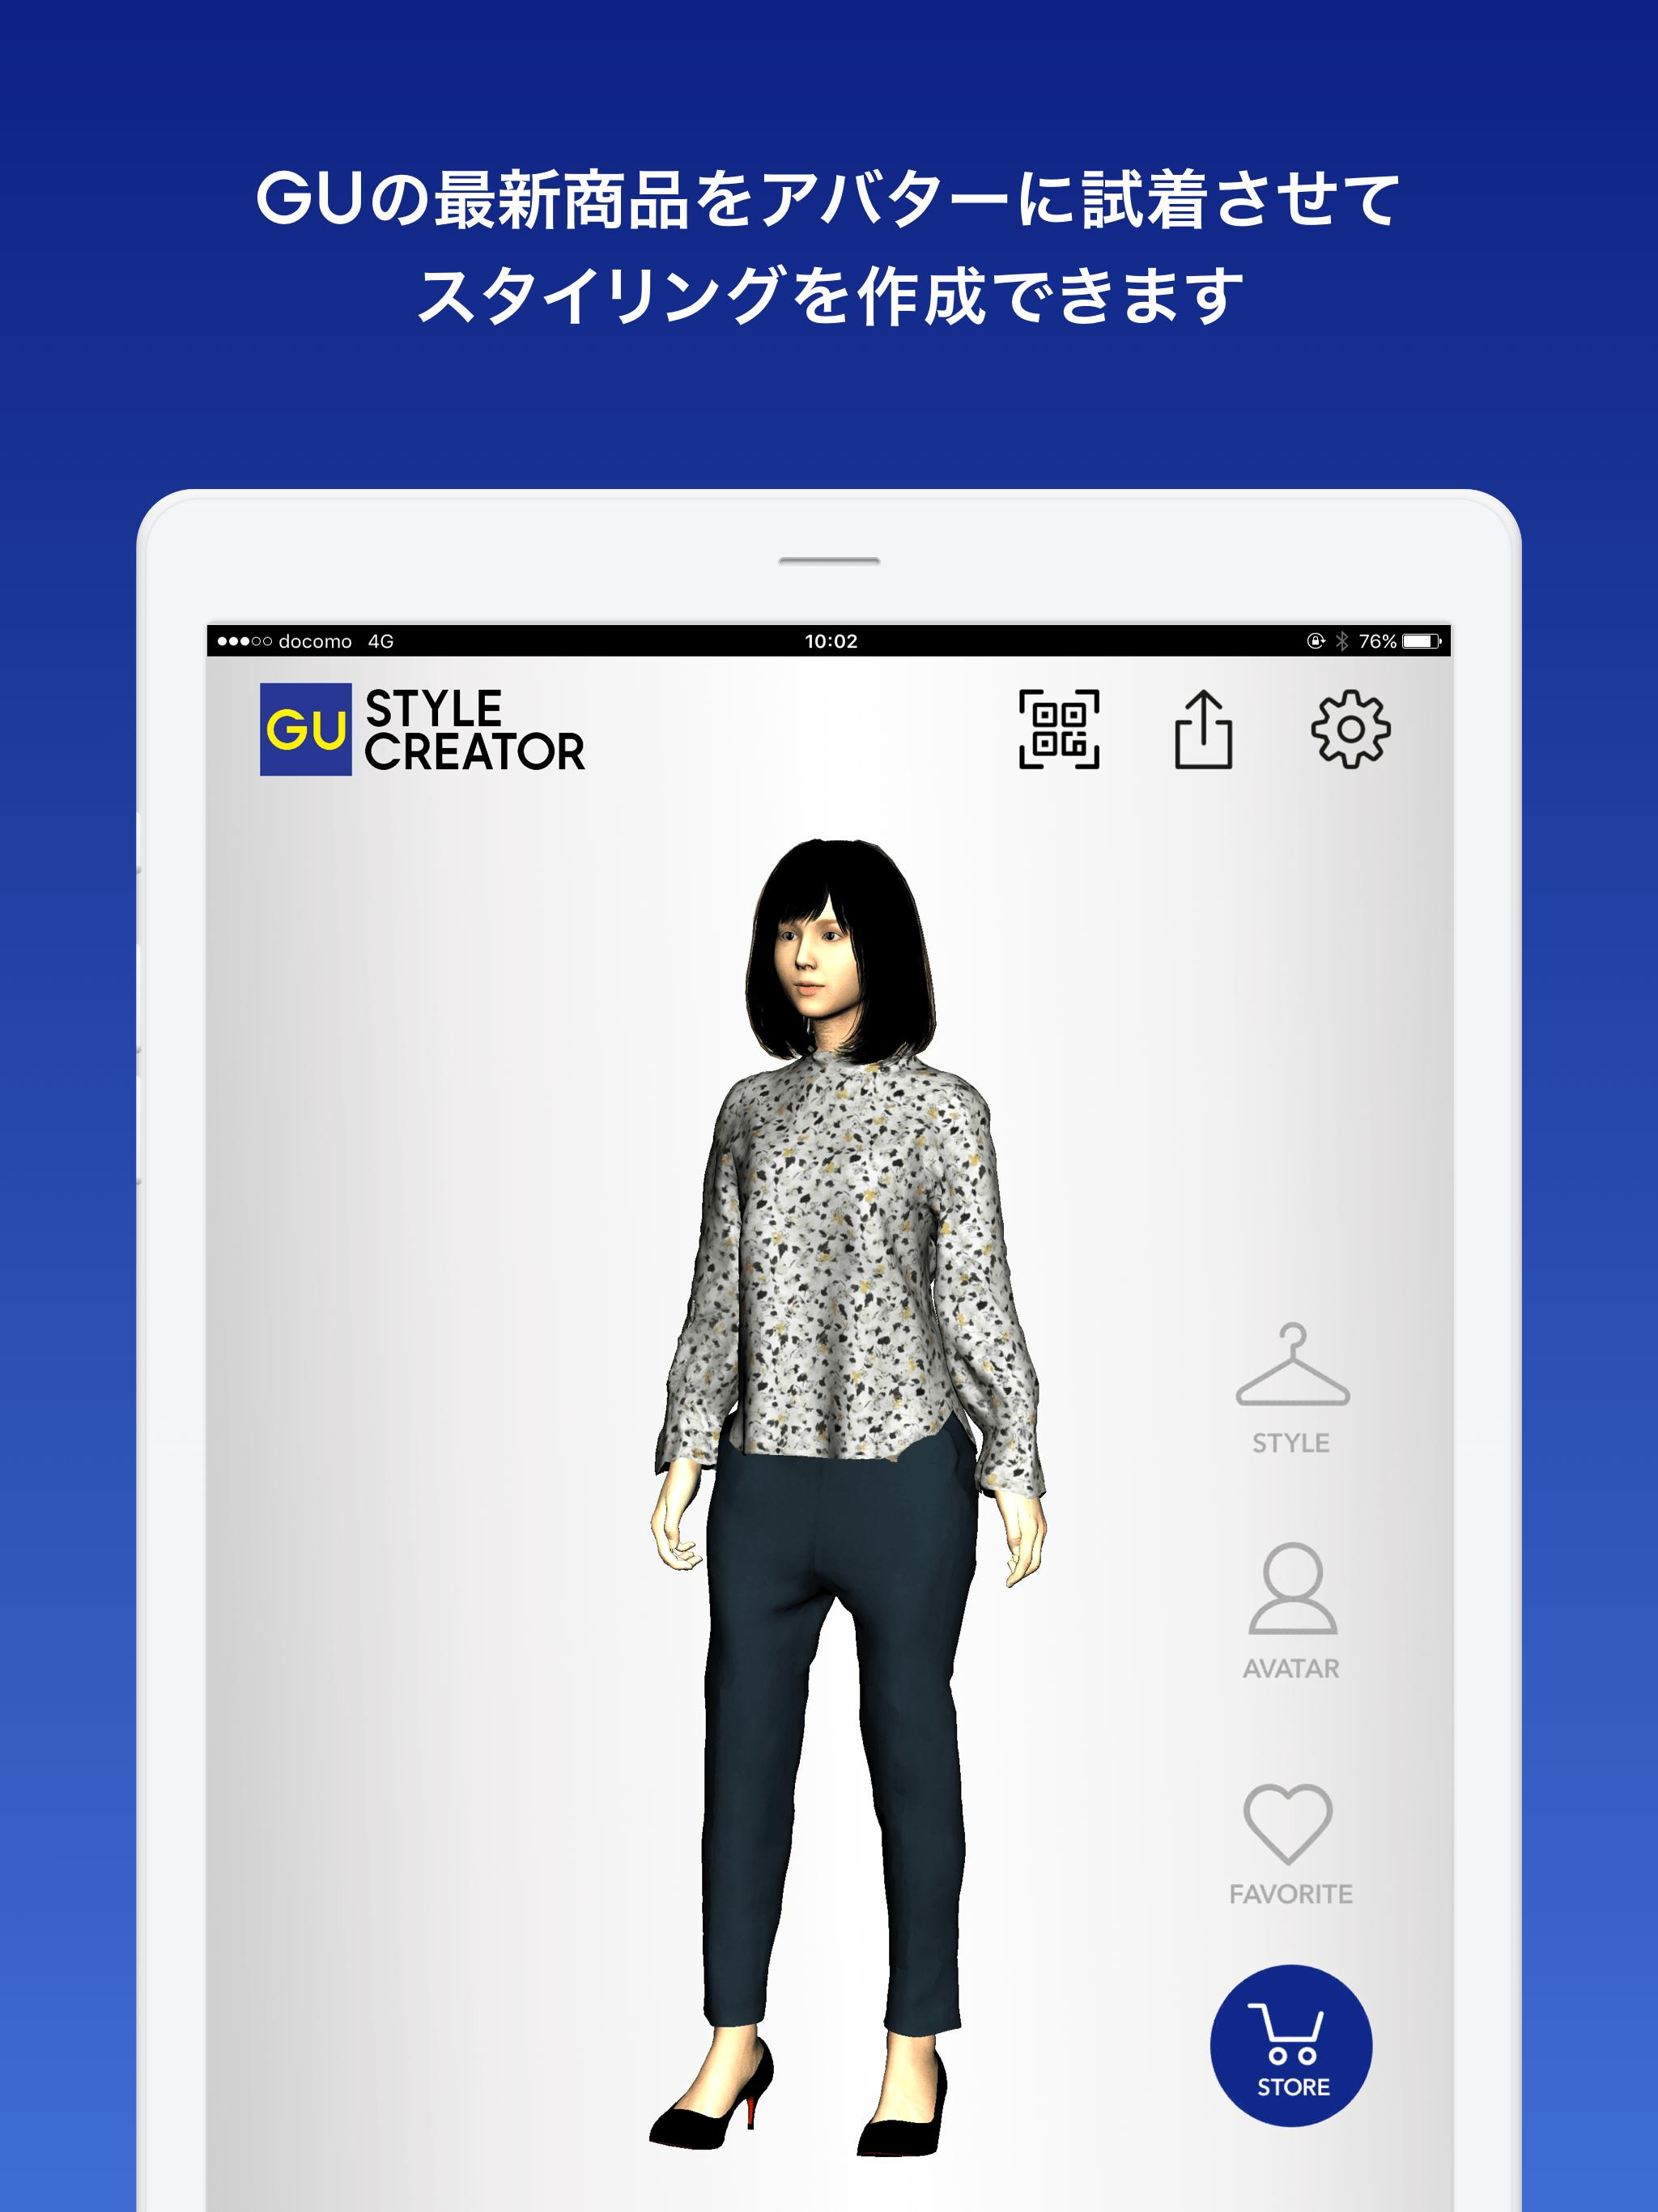 GU STYLE CREATOR for Android - APK Download